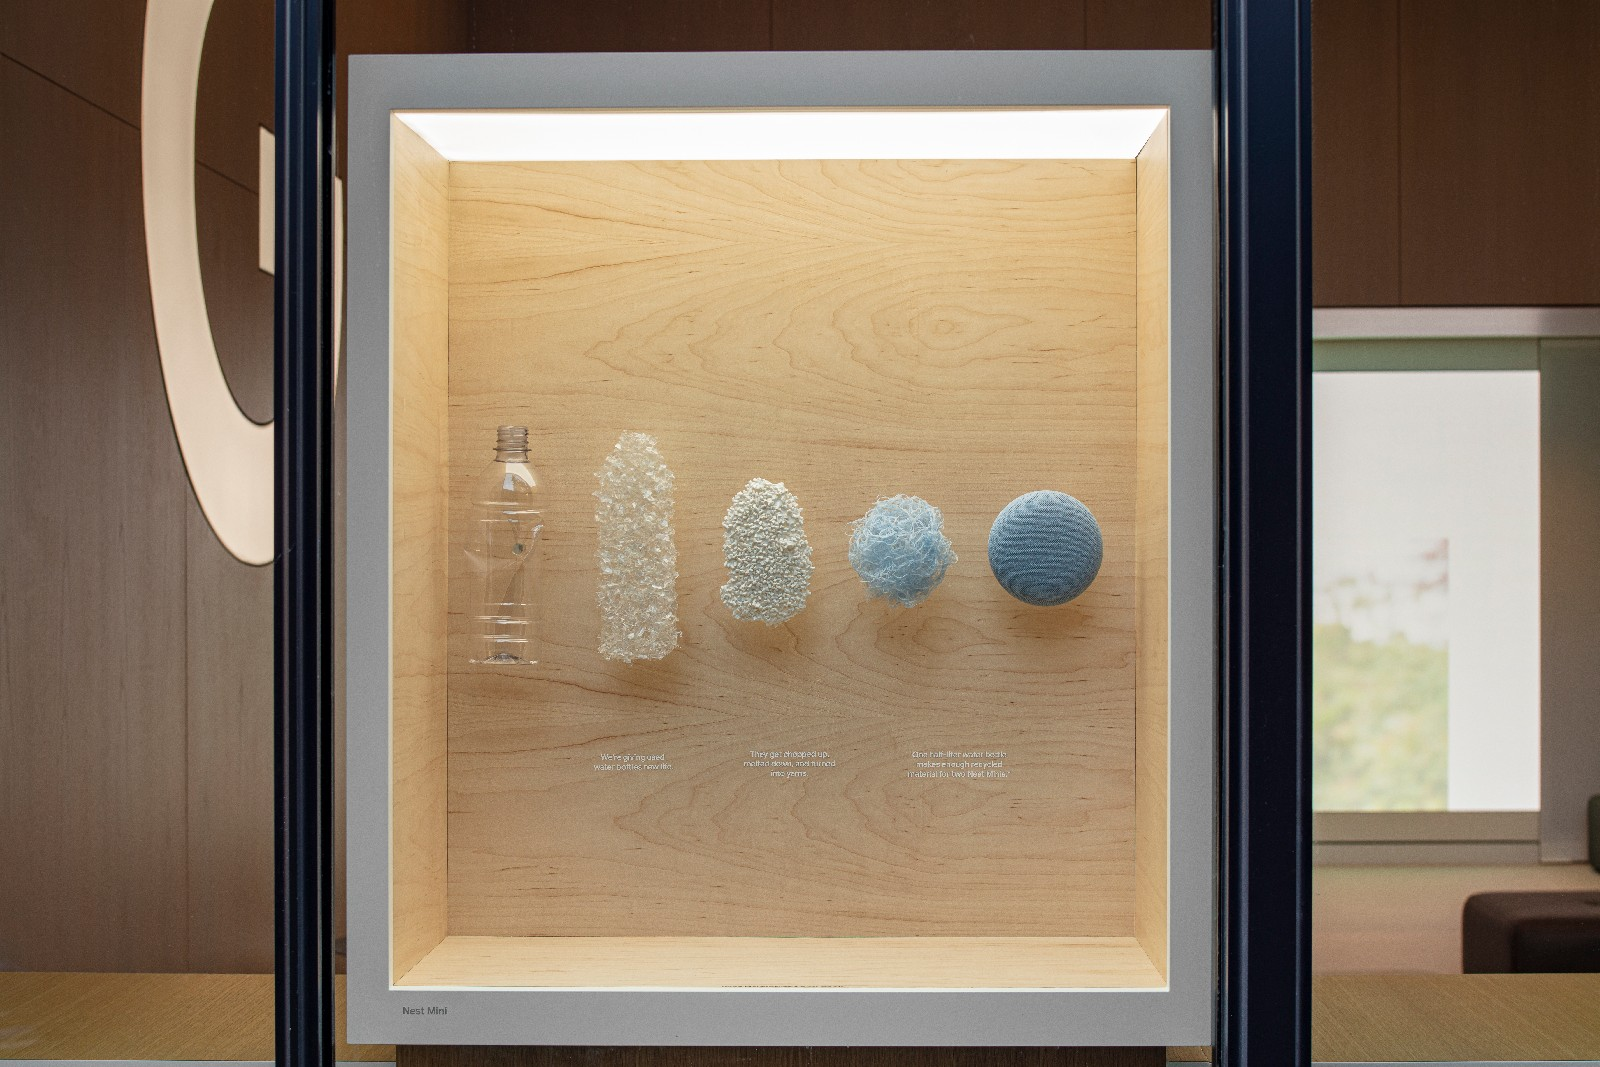 <p>Google Store Chelsea. A Discovery box in the store showcasing Google products recycled plastic bottles that become the fabric covering for a Nest mini speaker.</p>